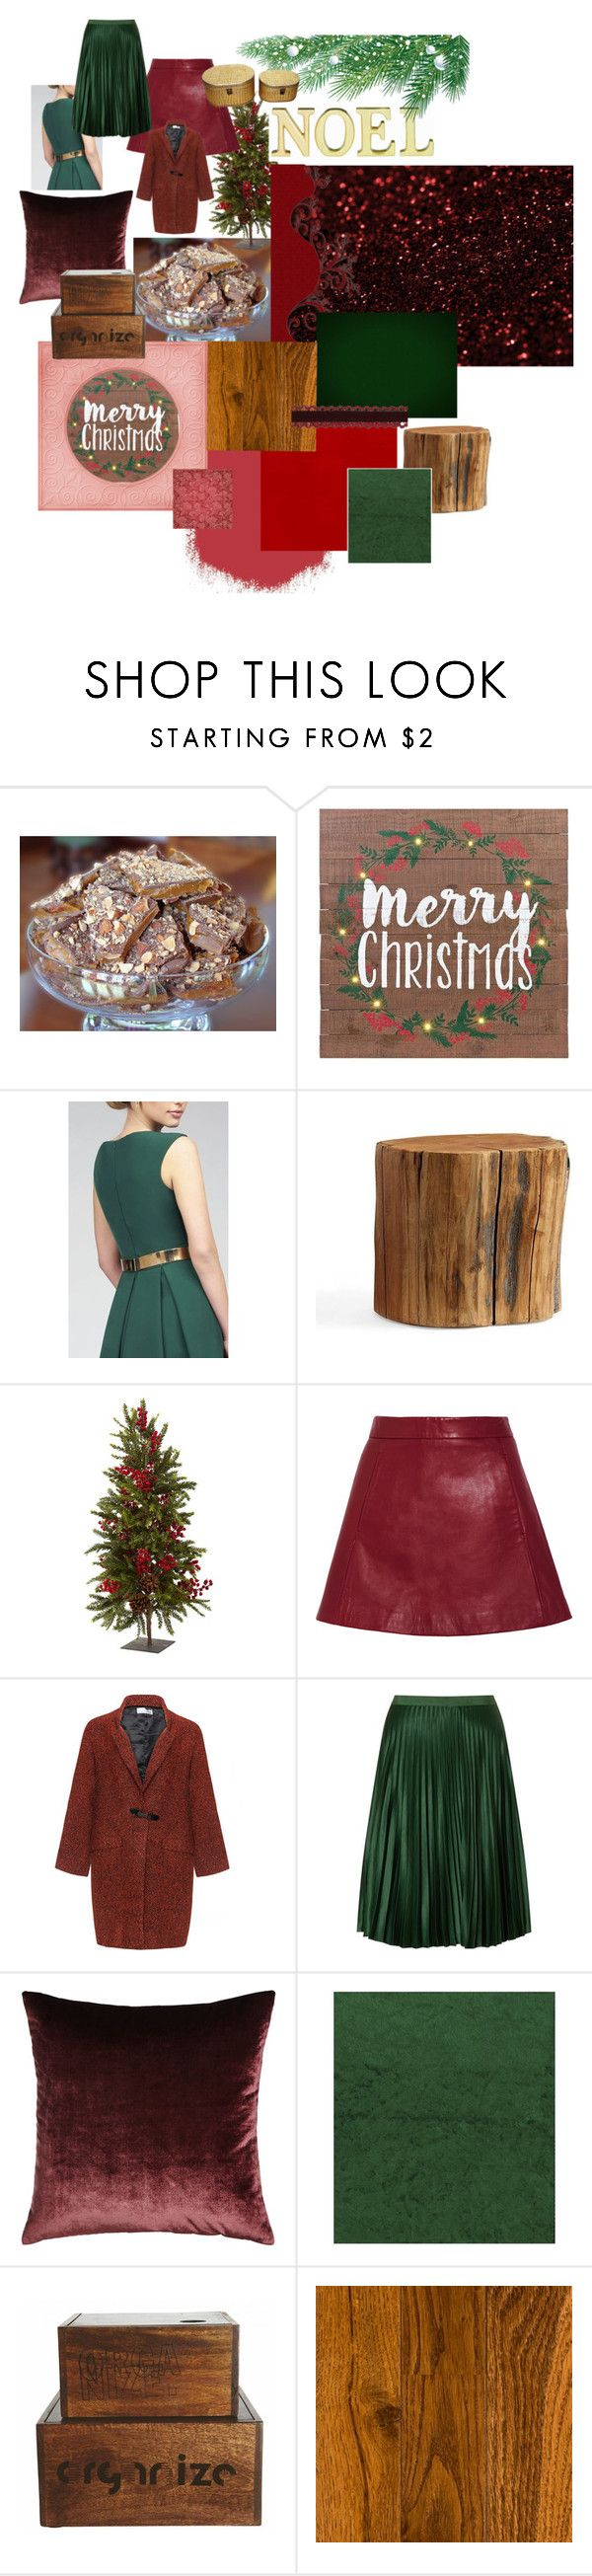 """Decembre 2017"" by marleenbloemstyliste on Polyvore featuring interior, interiors, interior design, thuis, home decor, interior decorating, Mac Duggal, Pottery Barn, Nearly Natural en Ganni"